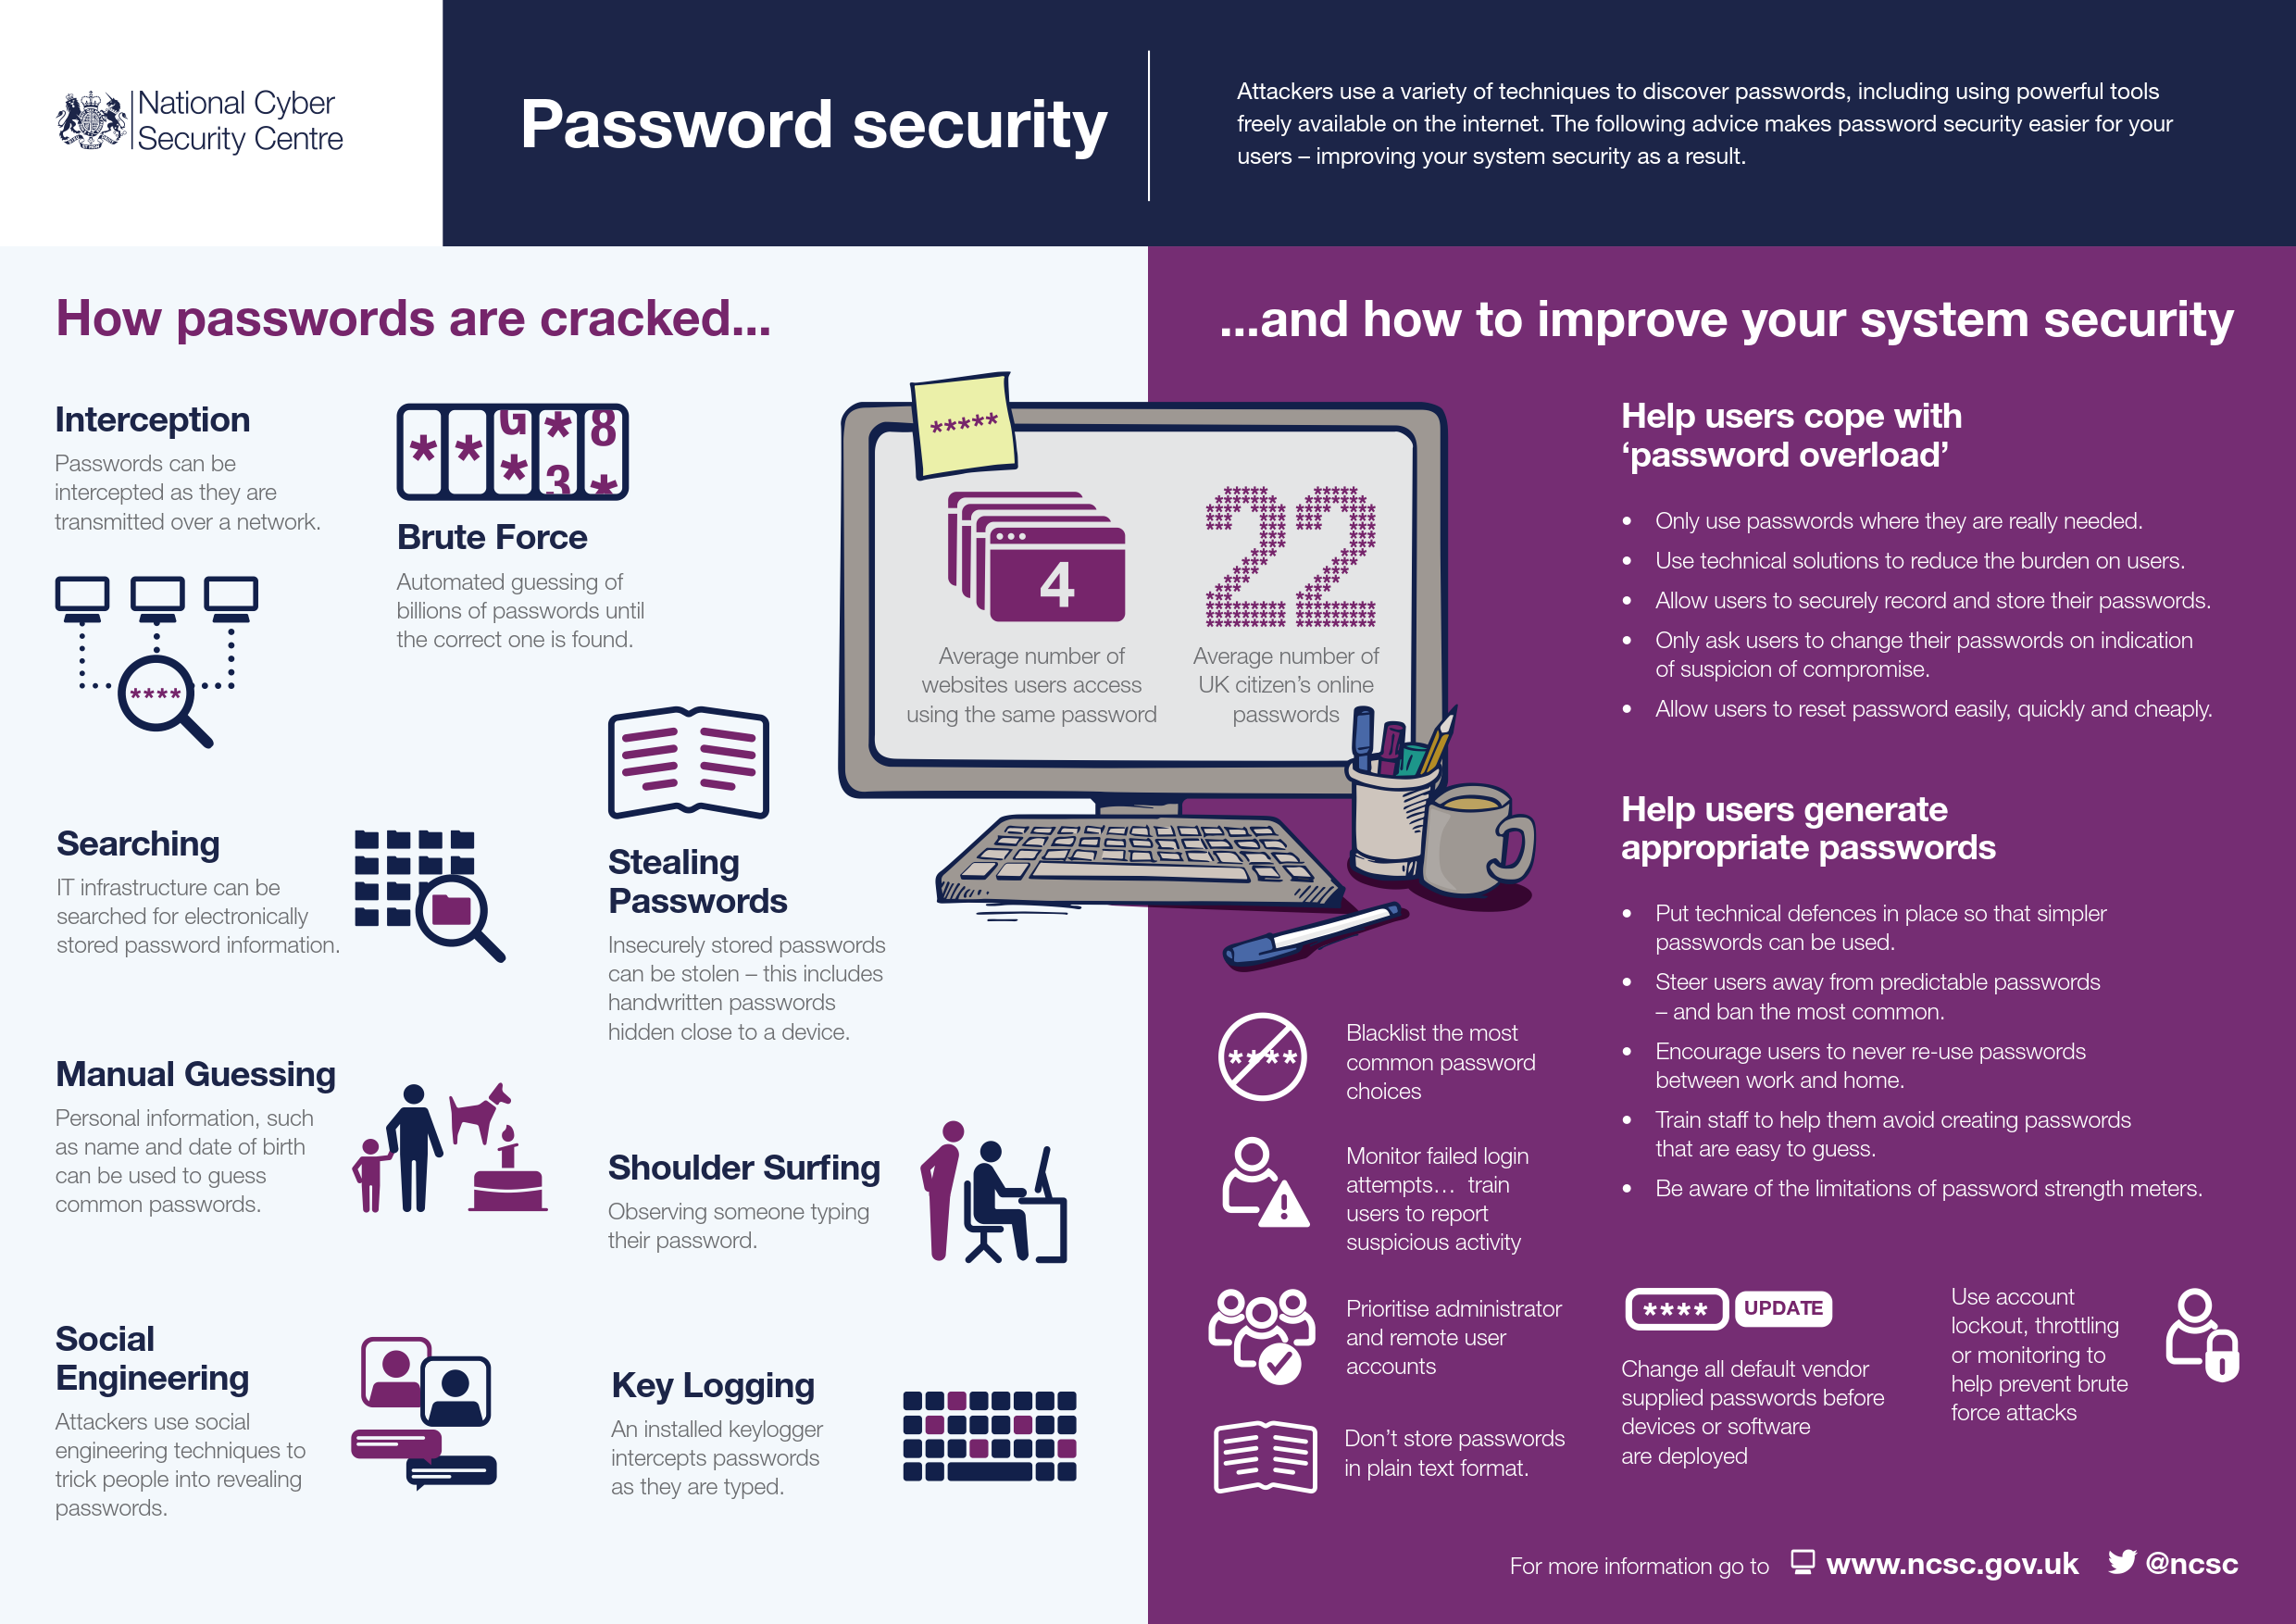 Password security & guidance from the UK's National Cyber